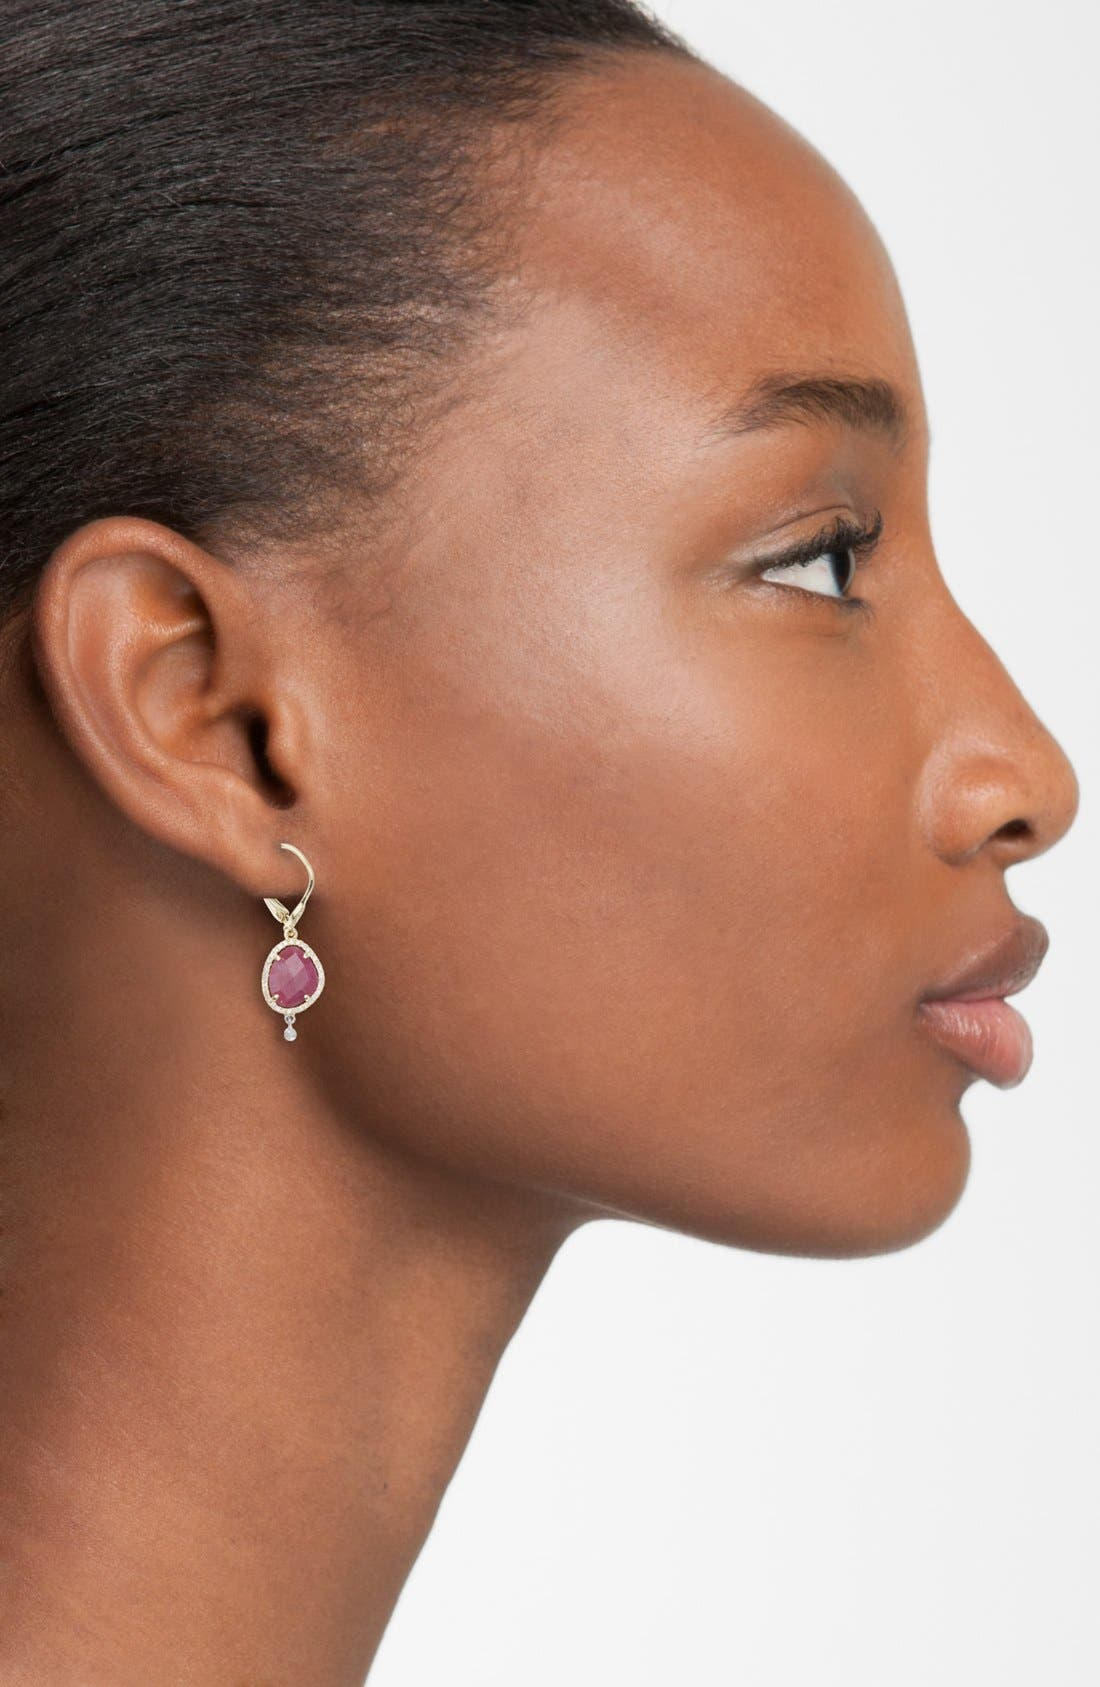 Diamond & Semiprecious Stone Drop Earrings,                             Alternate thumbnail 2, color,                             Ruby